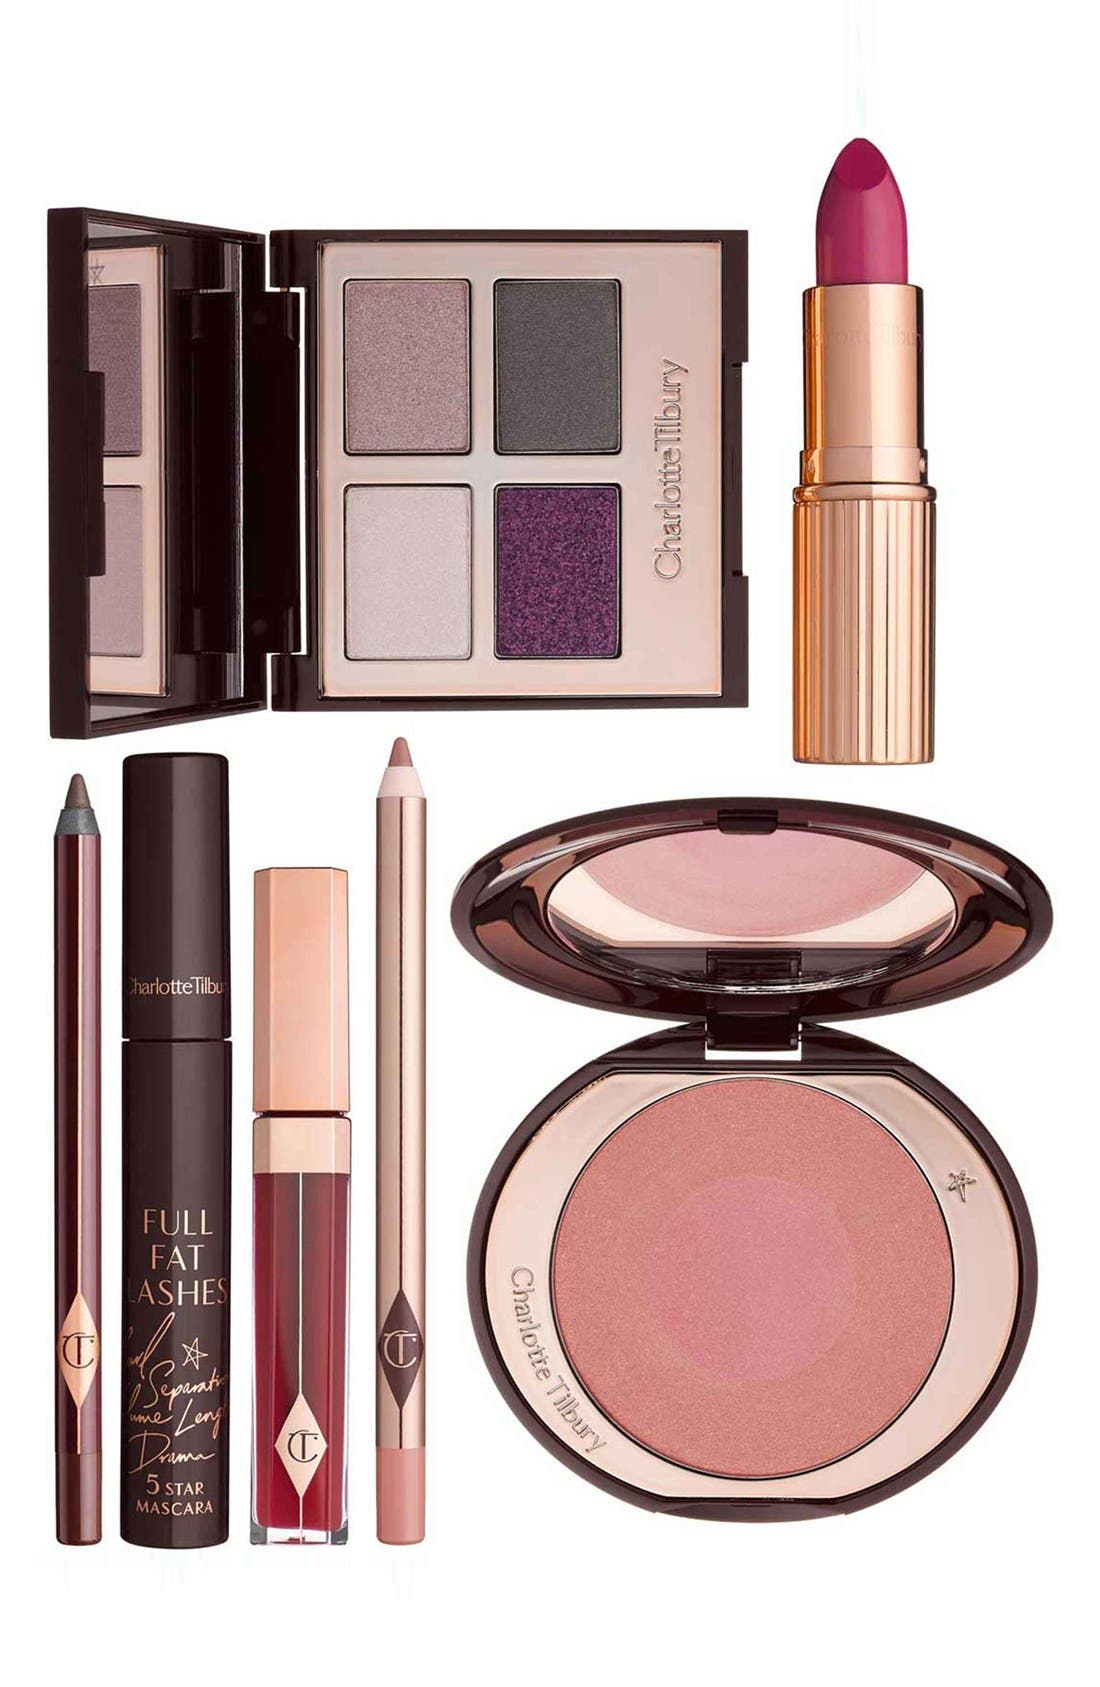 Charlotte Tilbury 'The Glamour Muse' Set ($243 Value)